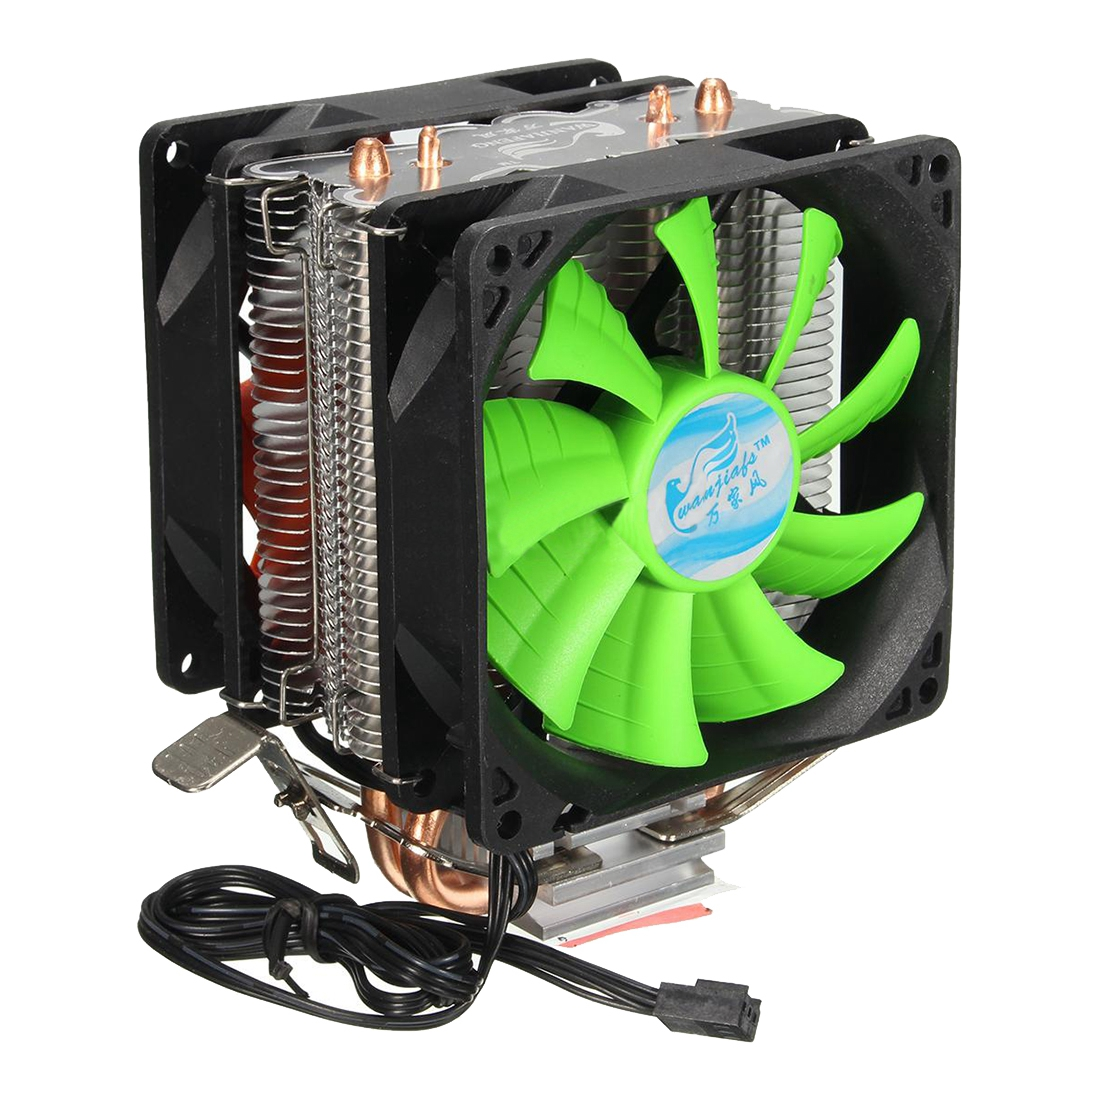 CPU cooler Silent Fan For Intel LGA775/1156/1155 (For AMD AM2/AM2+/AM3)(China (Mainland))